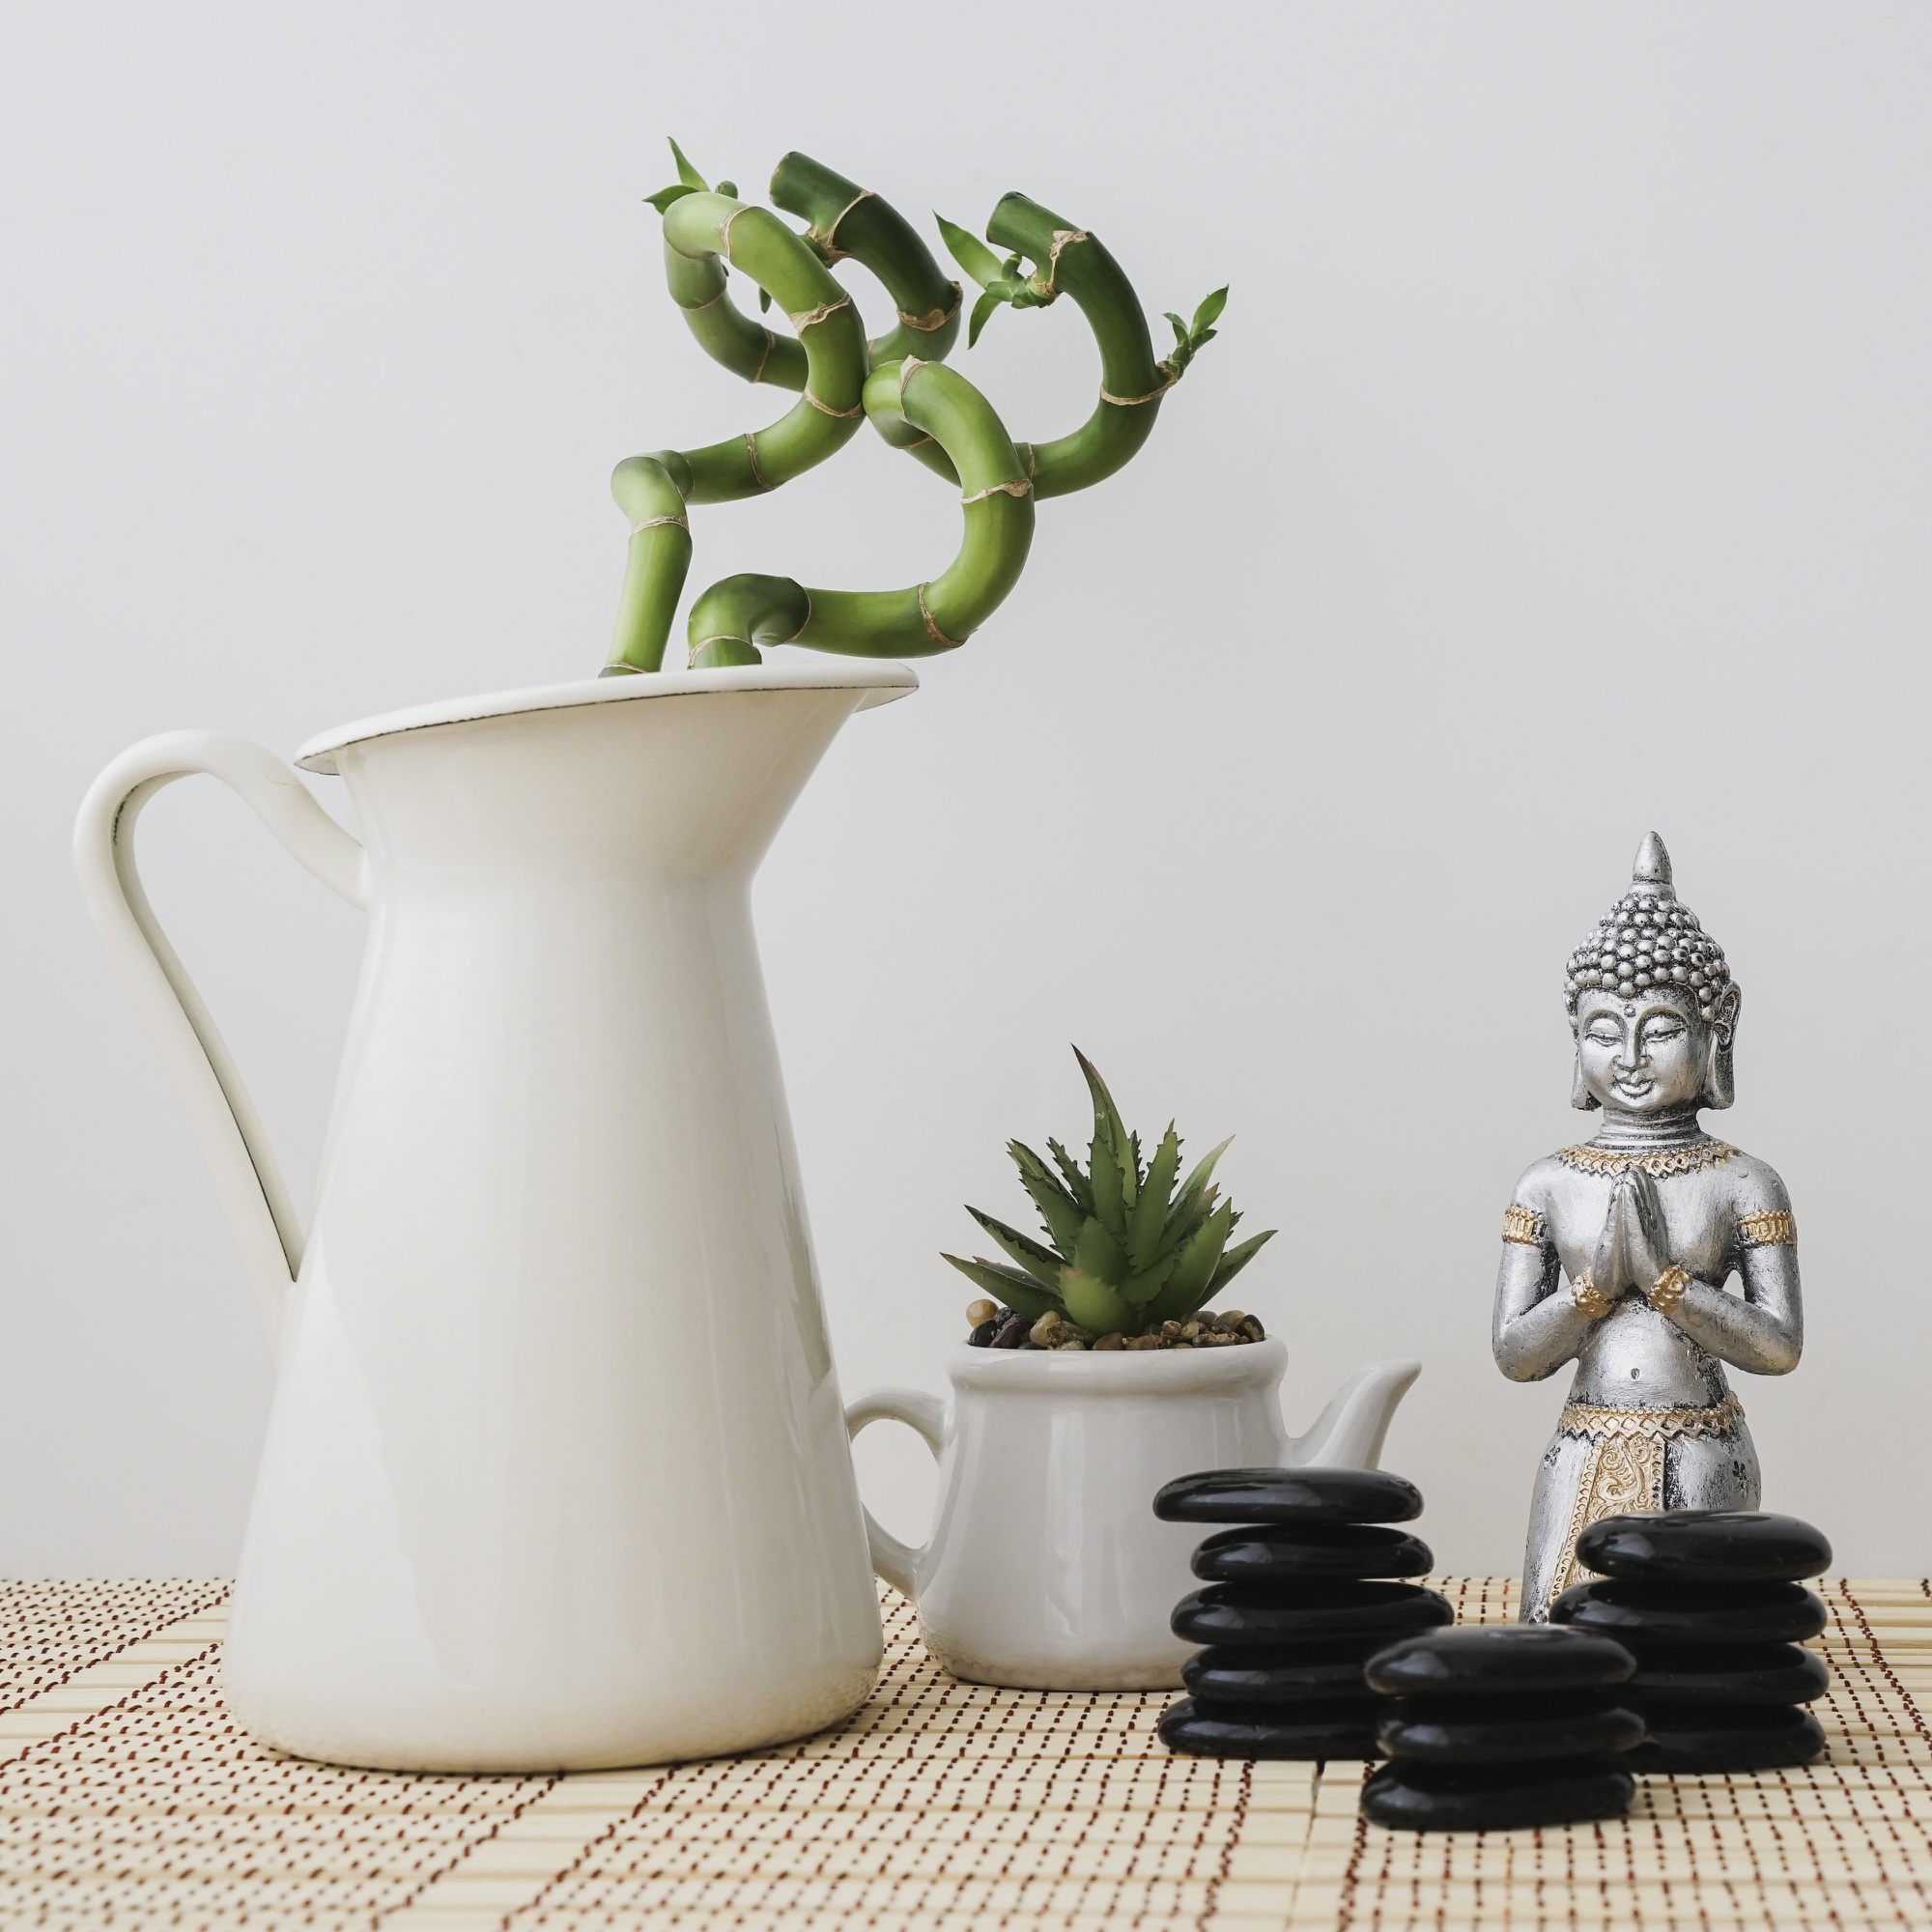 Composition with buddha, plants and stones